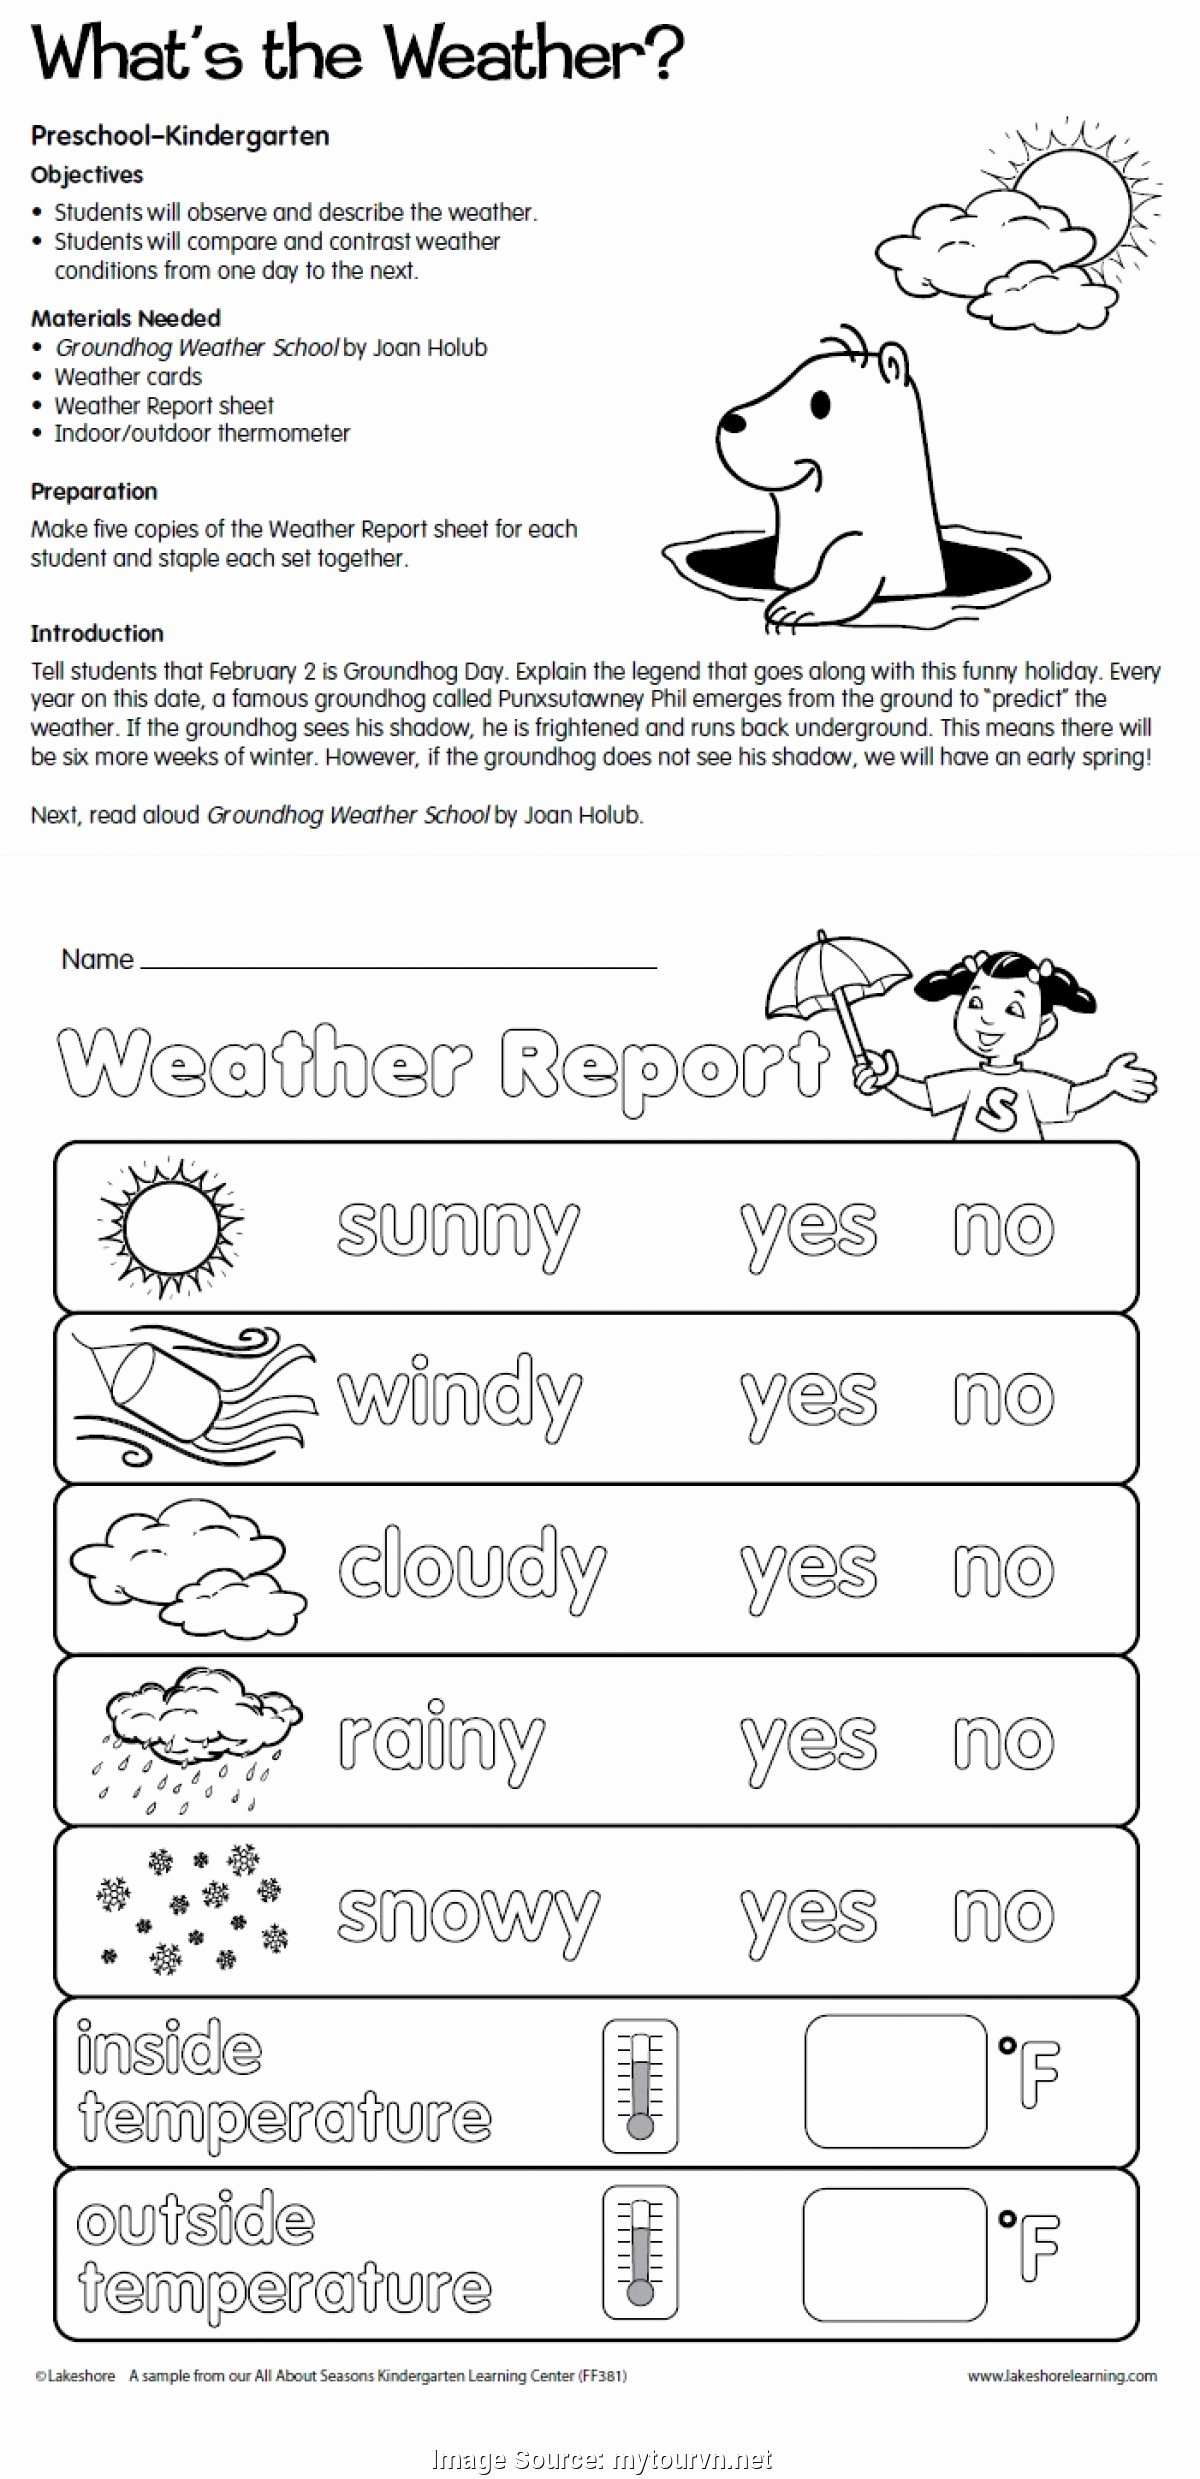 Weather Vs Climate Worksheet Elegant Regular Vpk Lesson Plans Samples Blank Preschool Weekly